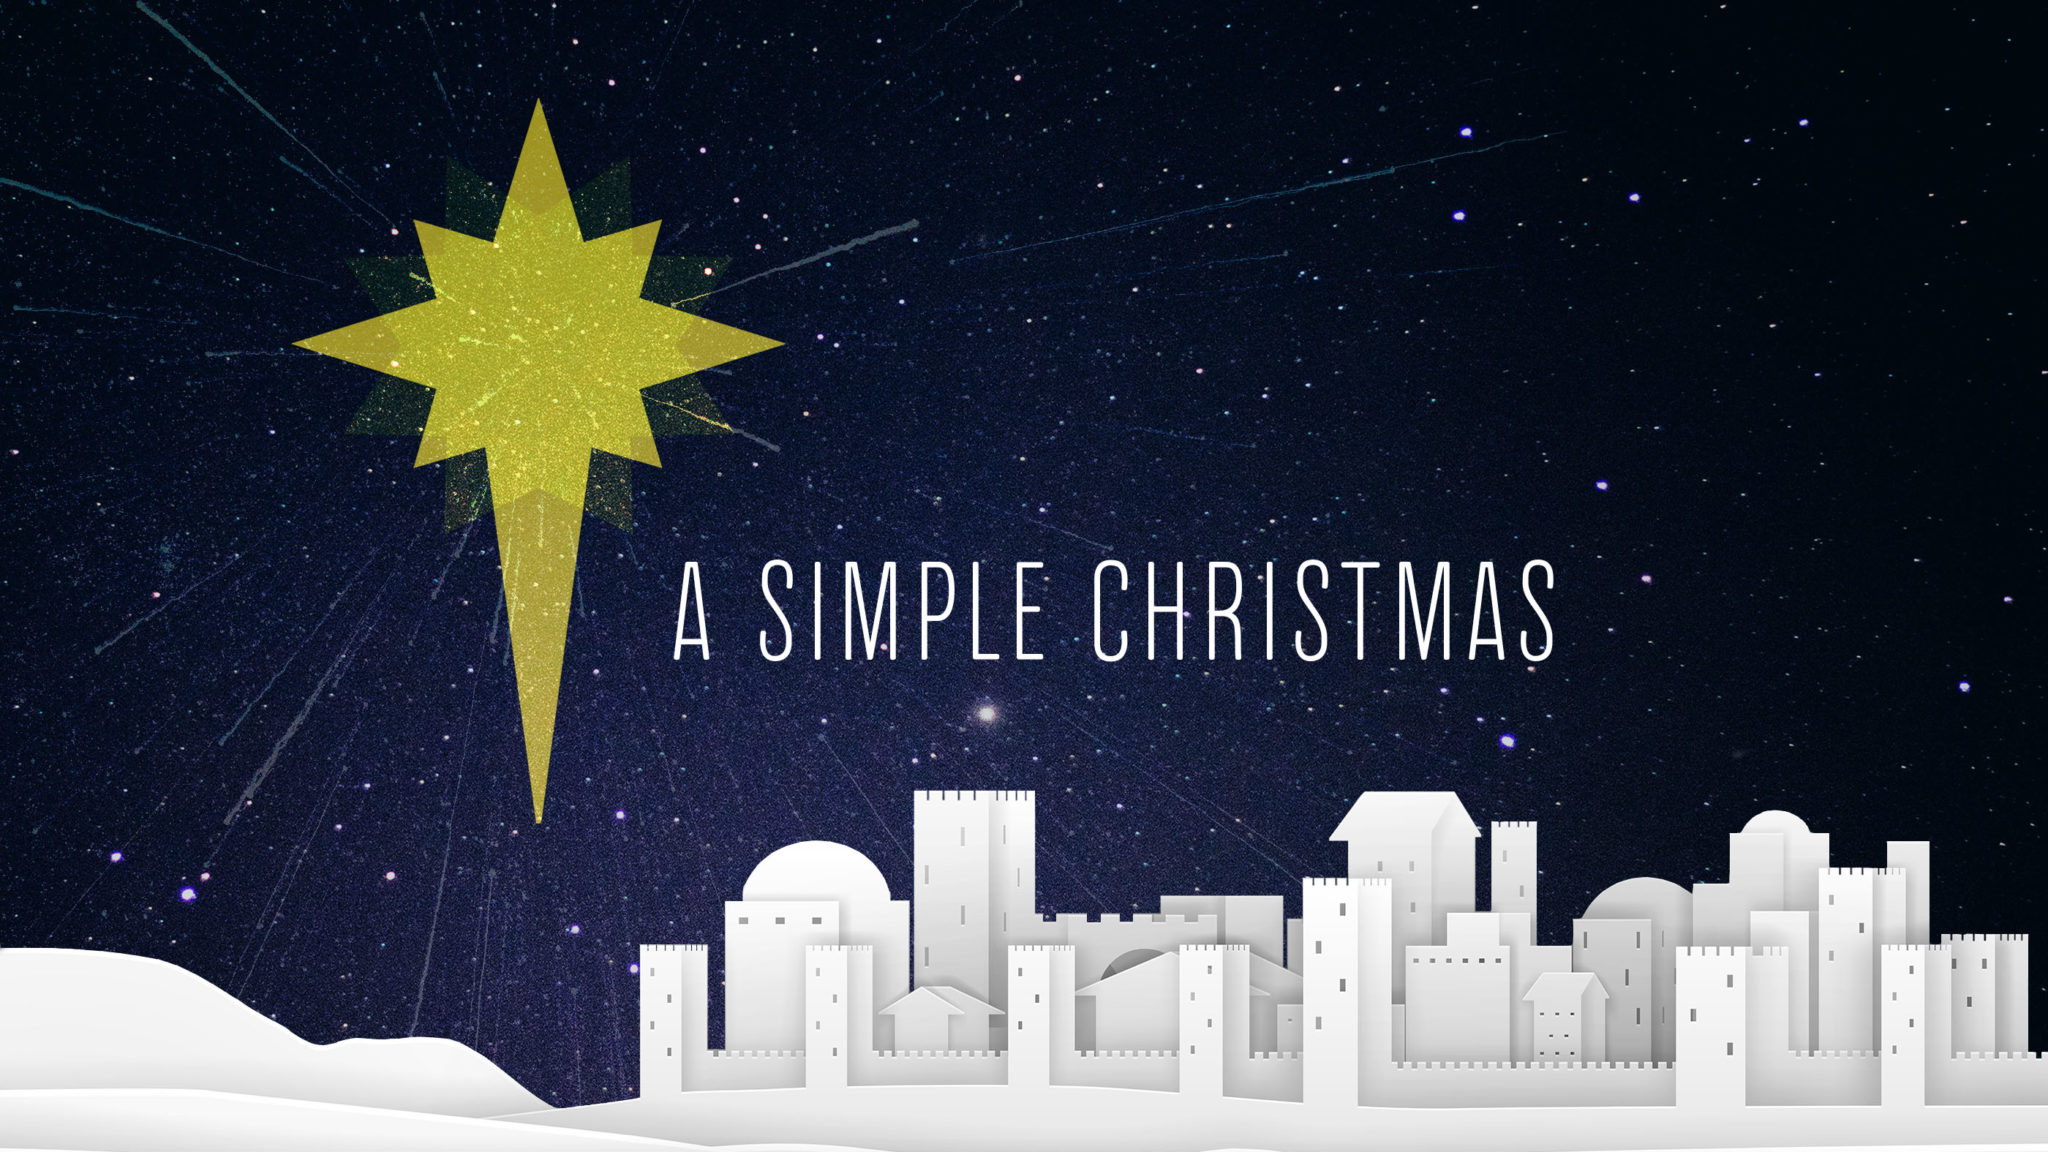 The Simplicity of Christmas